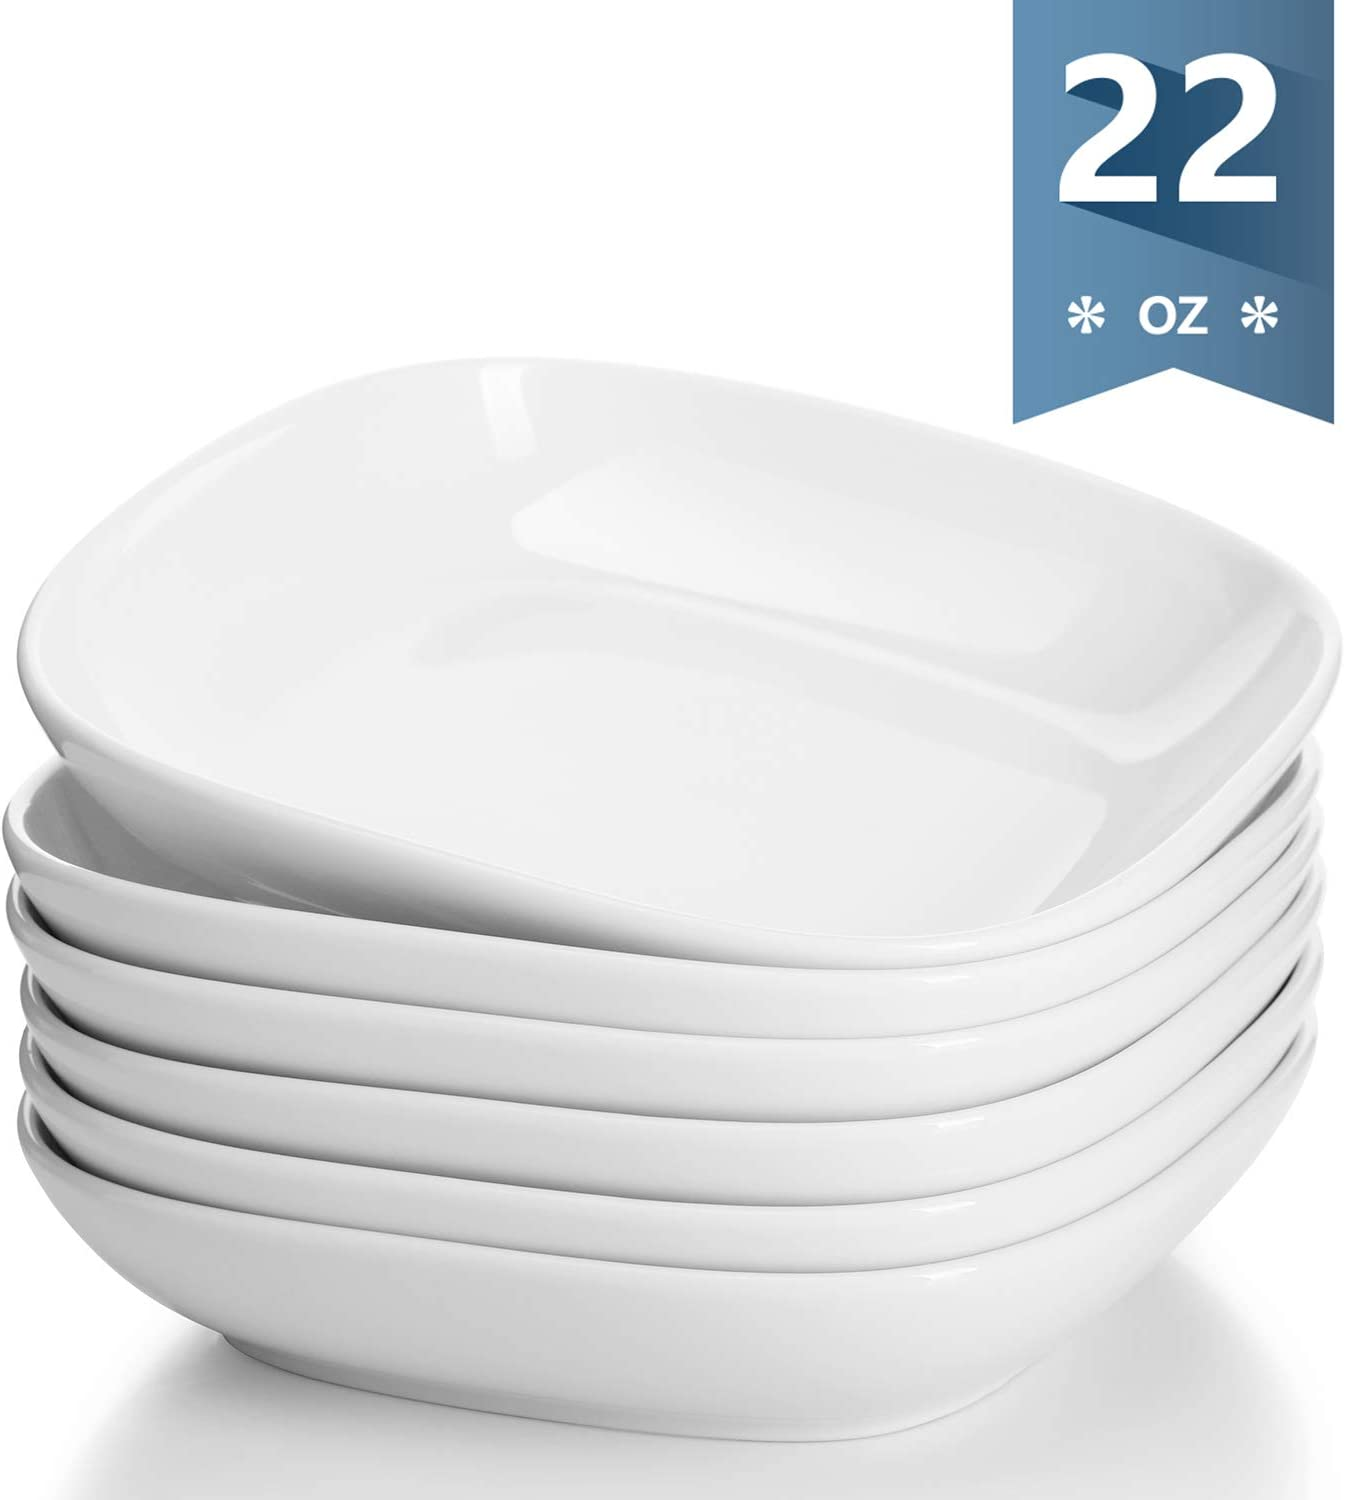 Sweese 120.001 Porcelain Square Salad Pasta Bowls - 22 Ounce - Set of 6, White